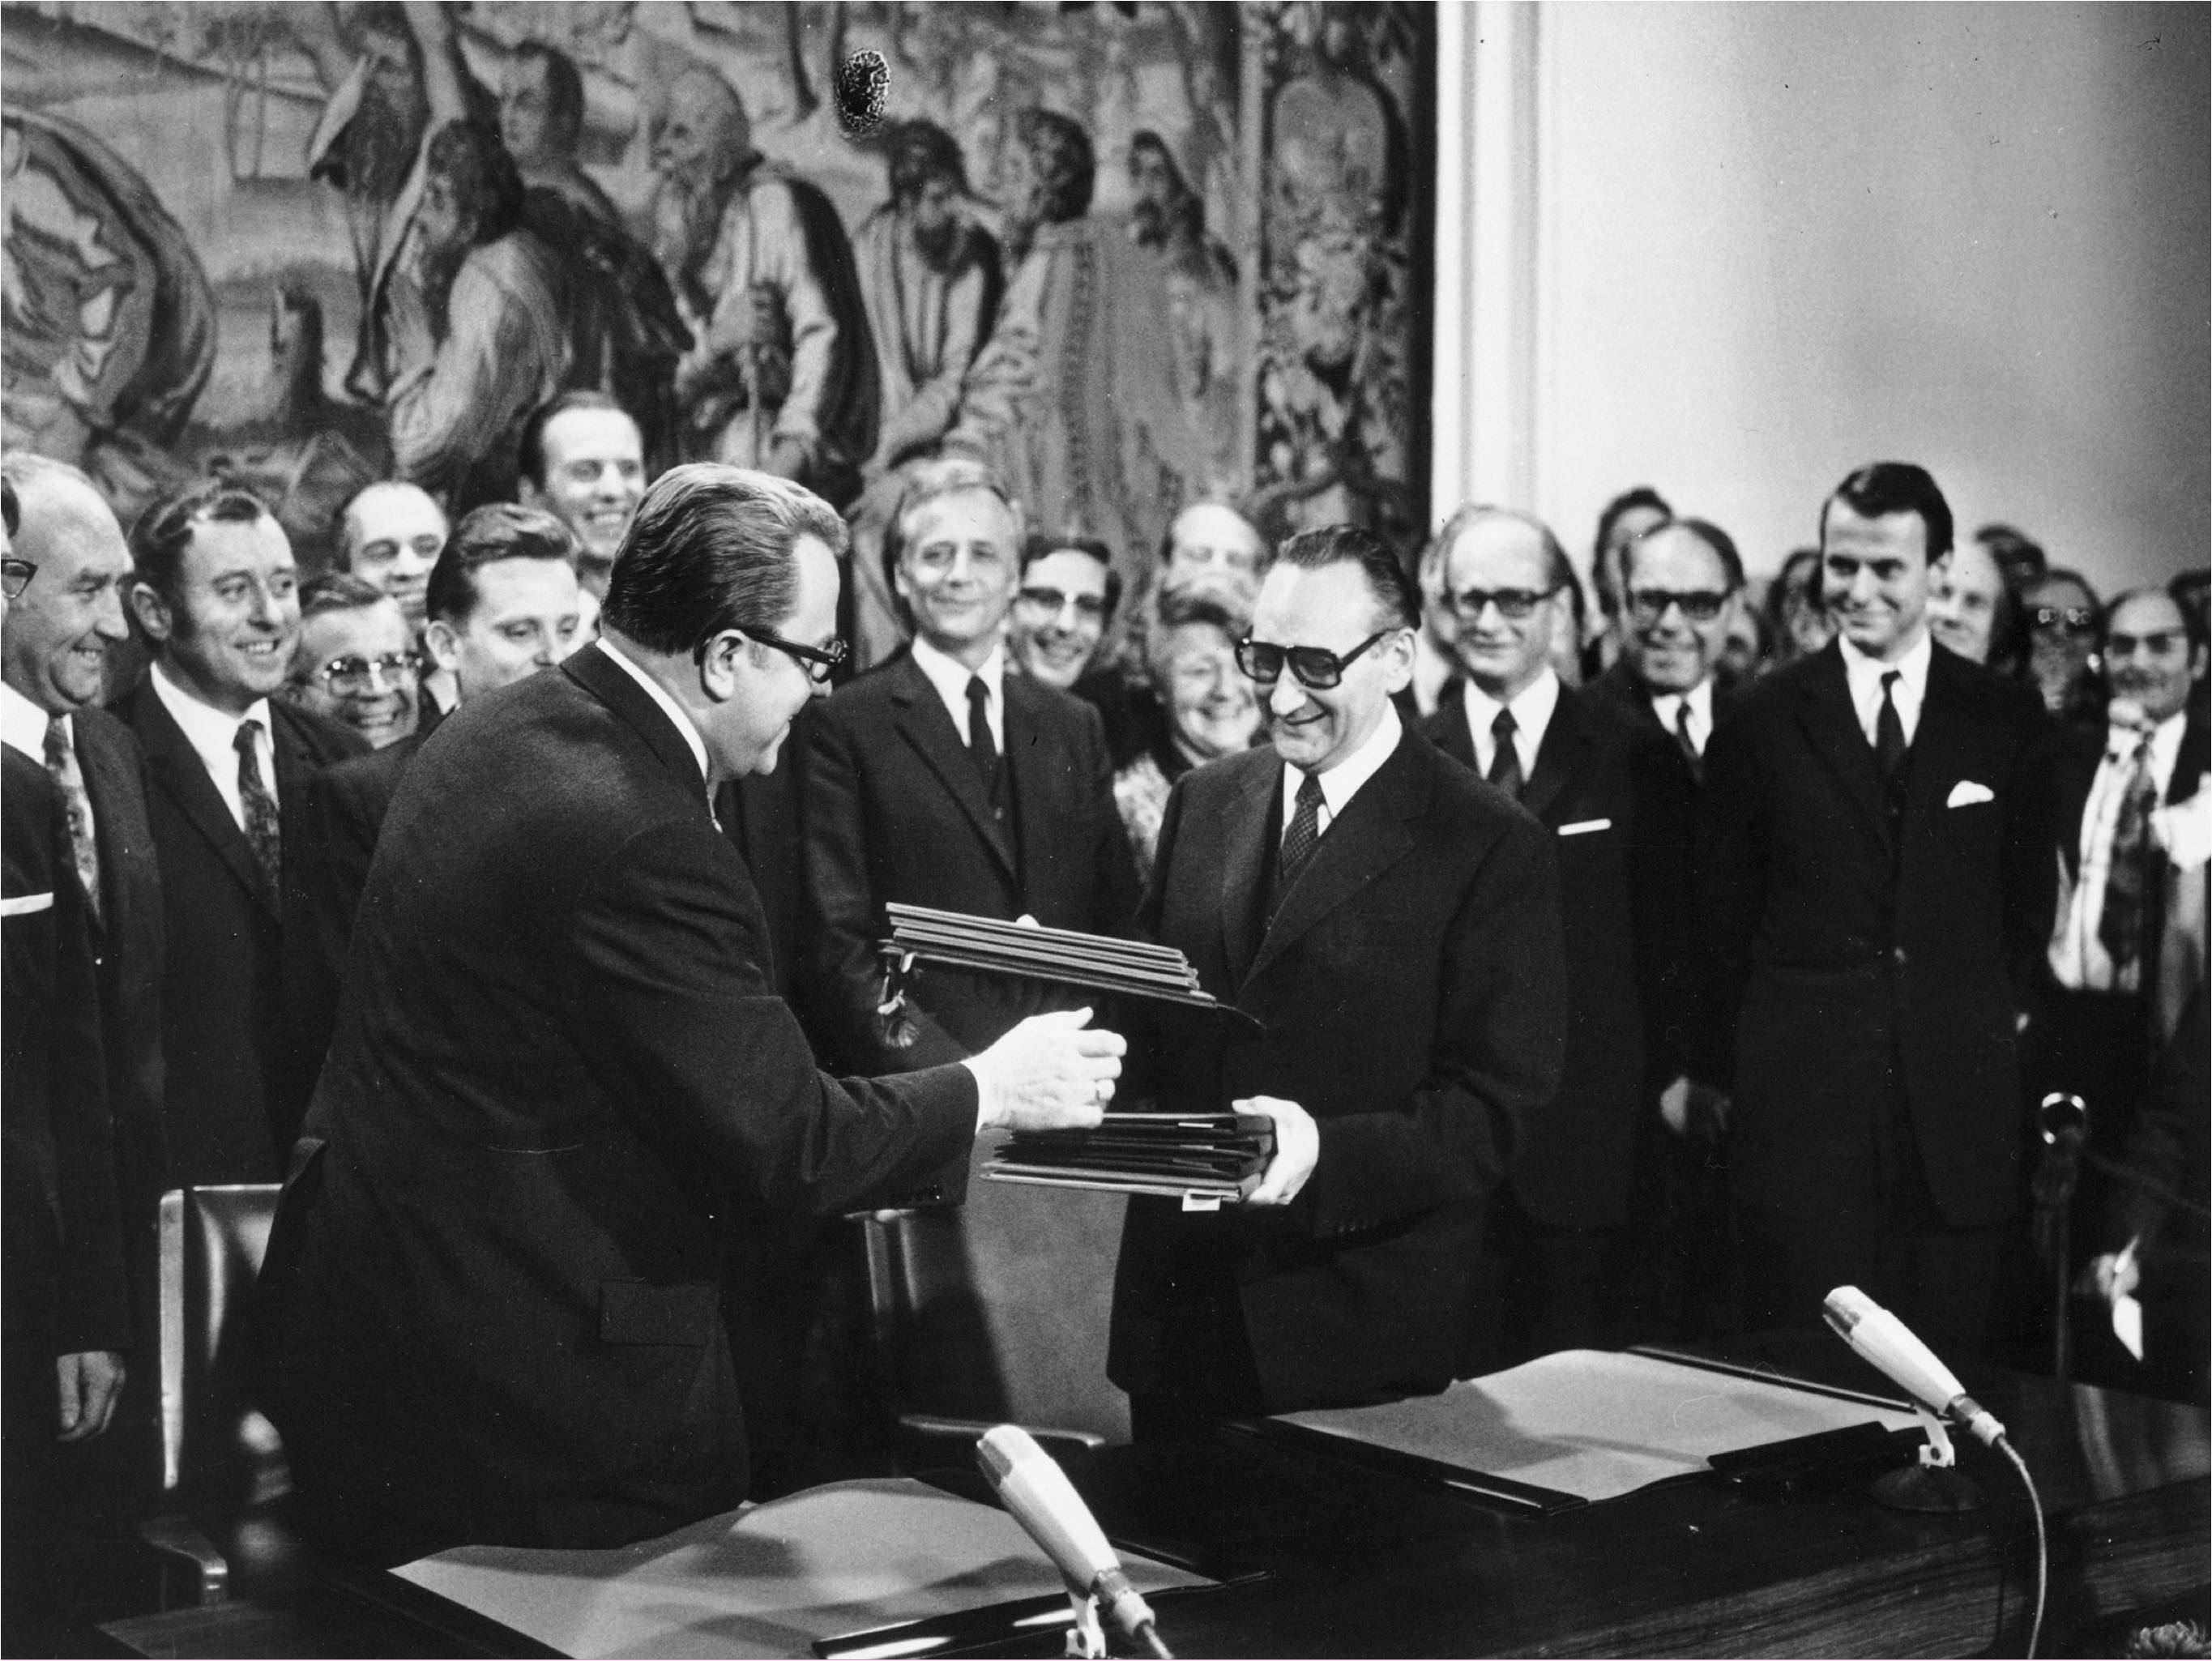 At a meeting in Bonn on November 8, 1972, East German State Secretary Michael Kohl (left) and West German State Secretary Egon Bahr (right) initialed the Basic Treaty between West Germany and East Germany.